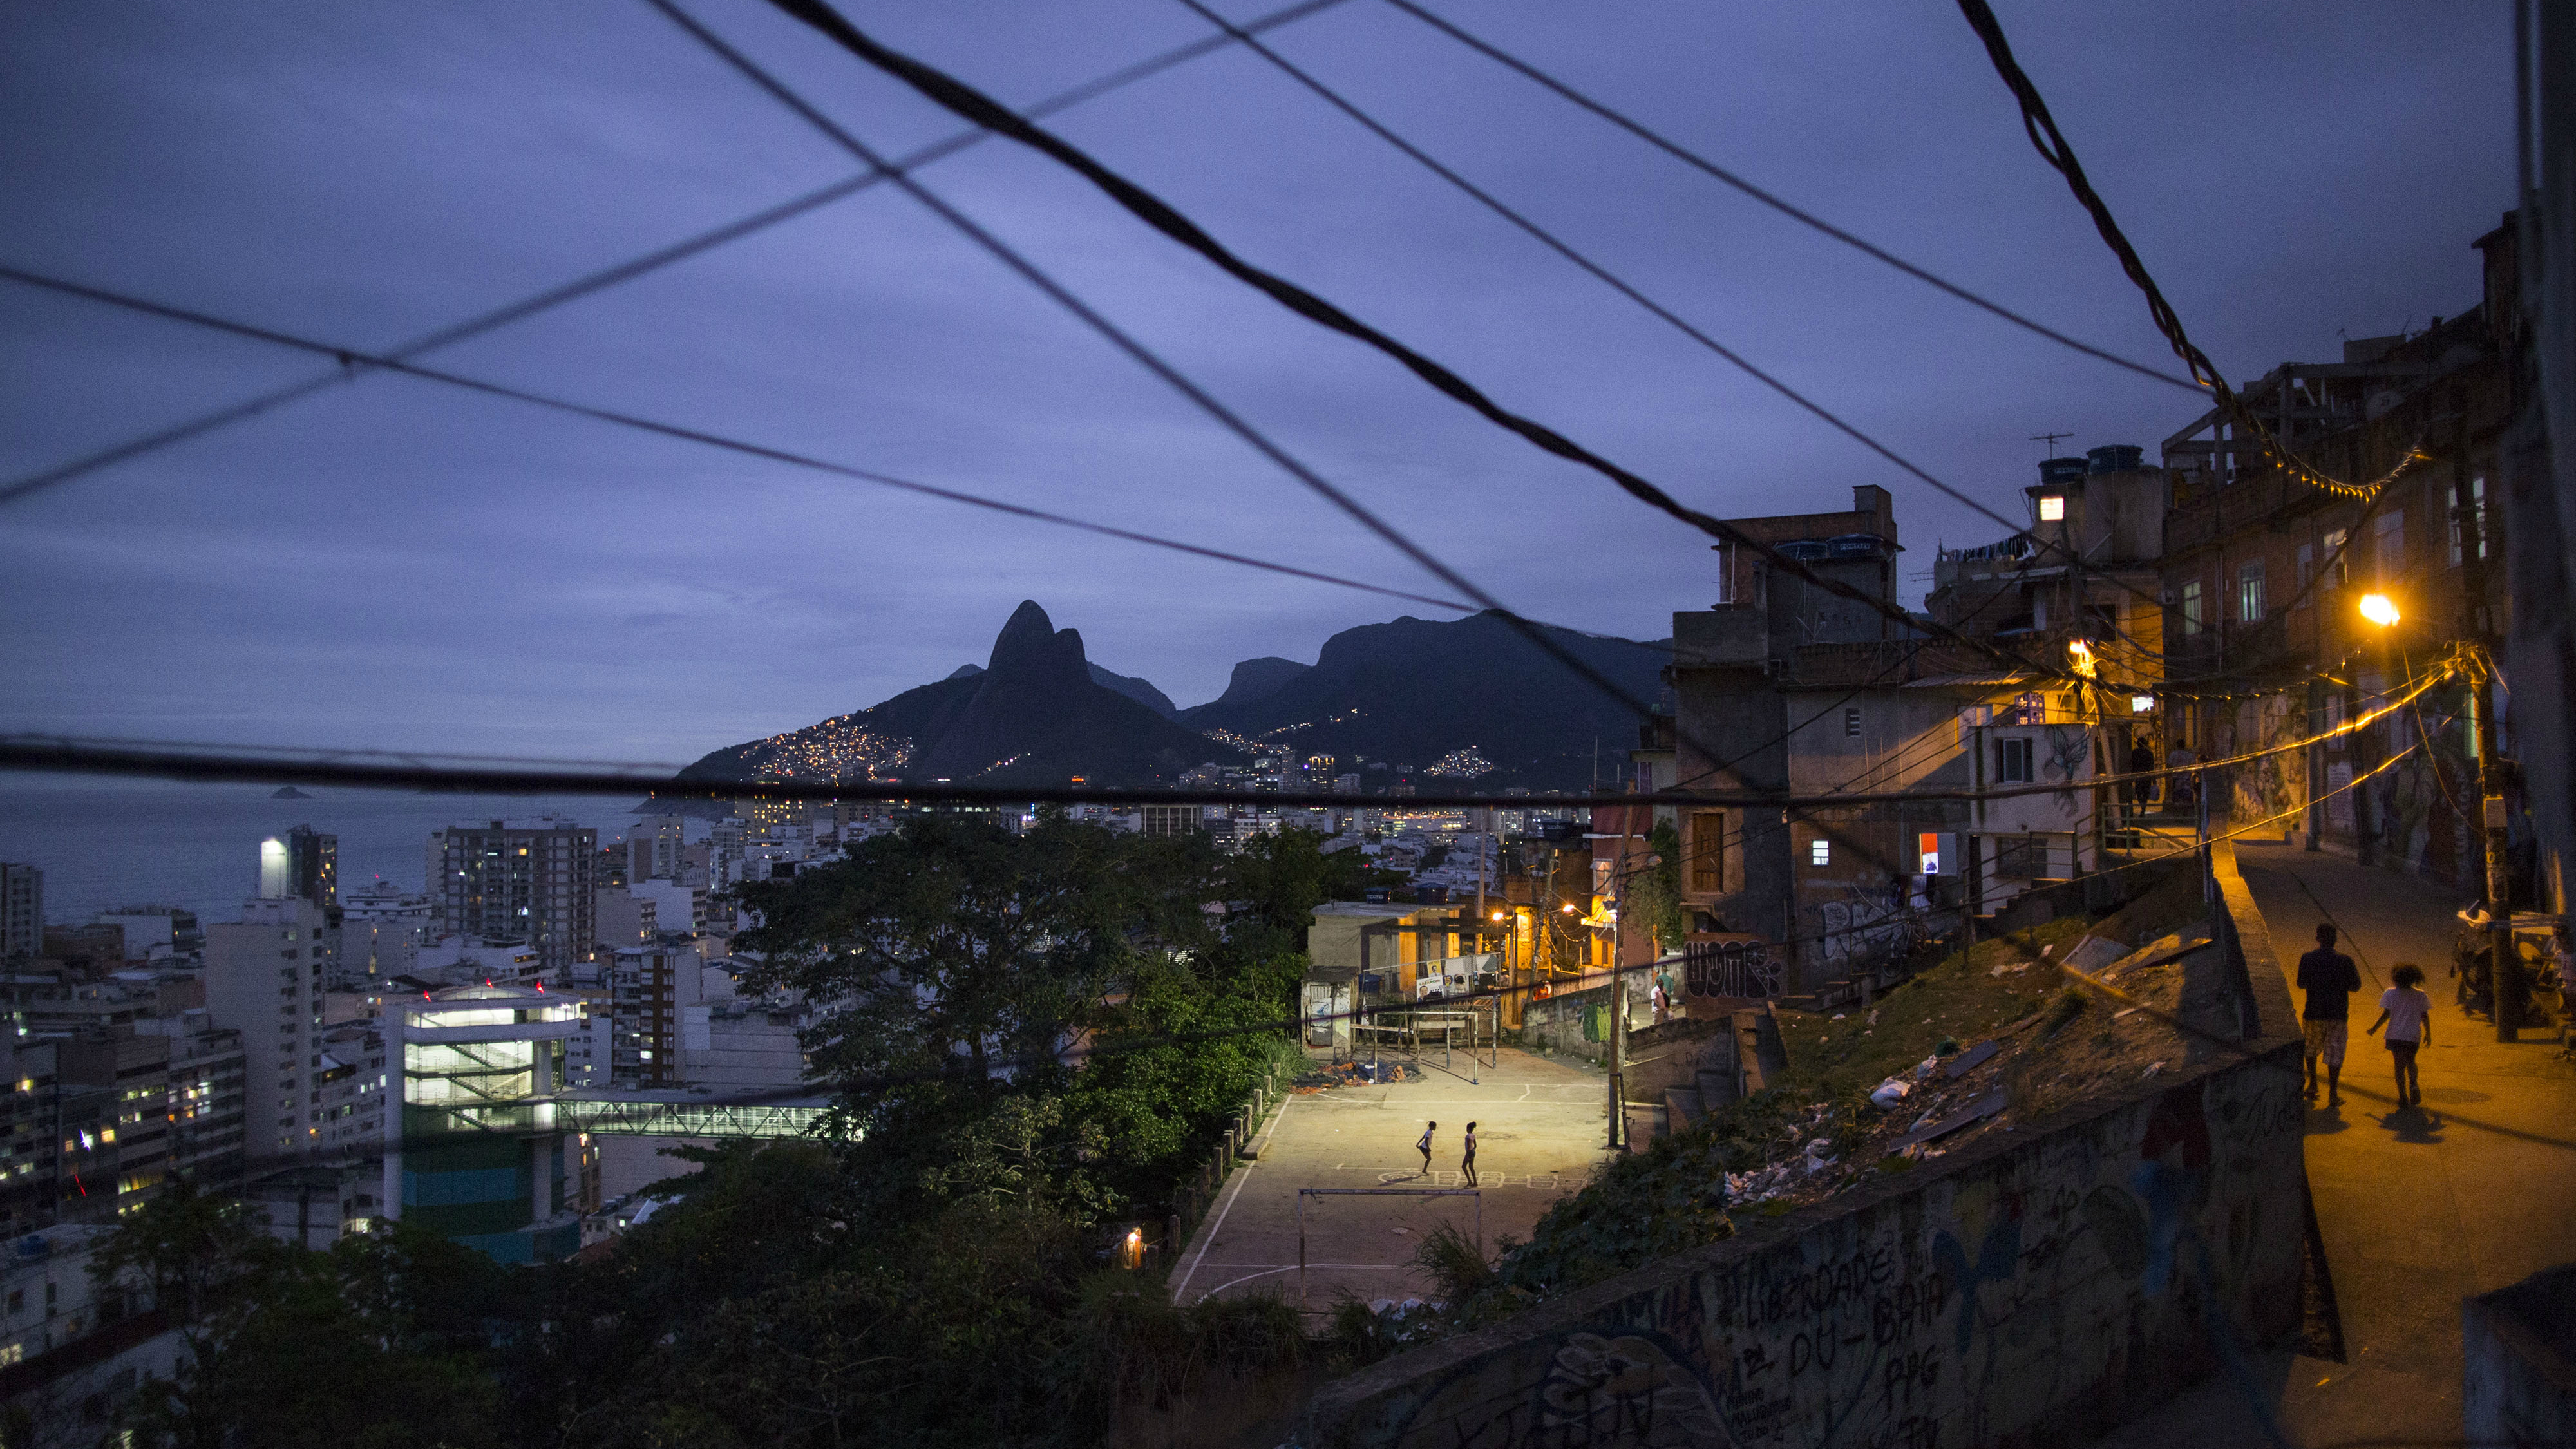 In this Oct. 21, 2014 photo, the upscale Ipanema neighborhood, left, stands along the coast, seen from the Cantagalo slum in Rio de Janeiro, Brazil. Polls have shown the poor overwhelmingly support President Dilma Rousseff, who is running for reelection, while the rich are massively behind opposition candidate Aecio Neves ahead of the Oct. 26 presidential run-off election. (AP Photo/Felipe Dana)